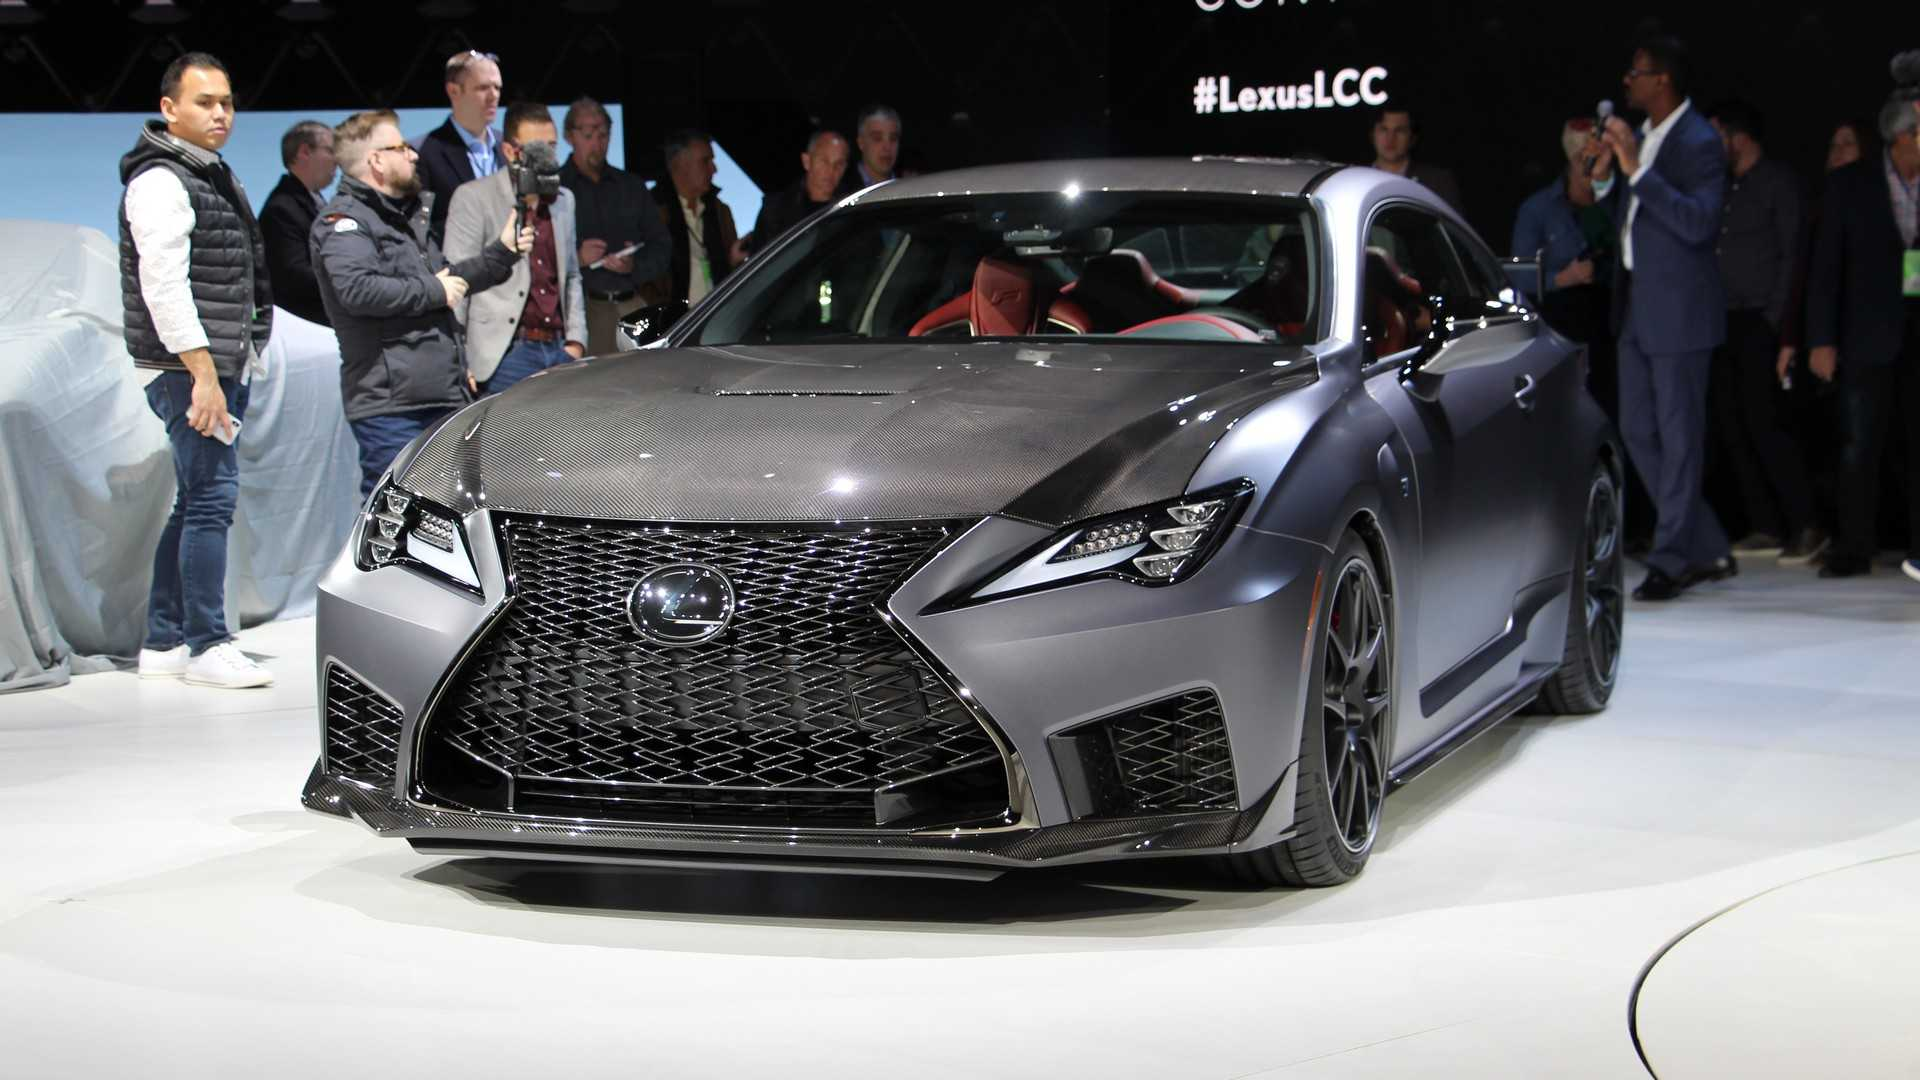 81 Best Review Lexus Rc F 2020 Price Exterior and Interior with Lexus Rc F 2020 Price